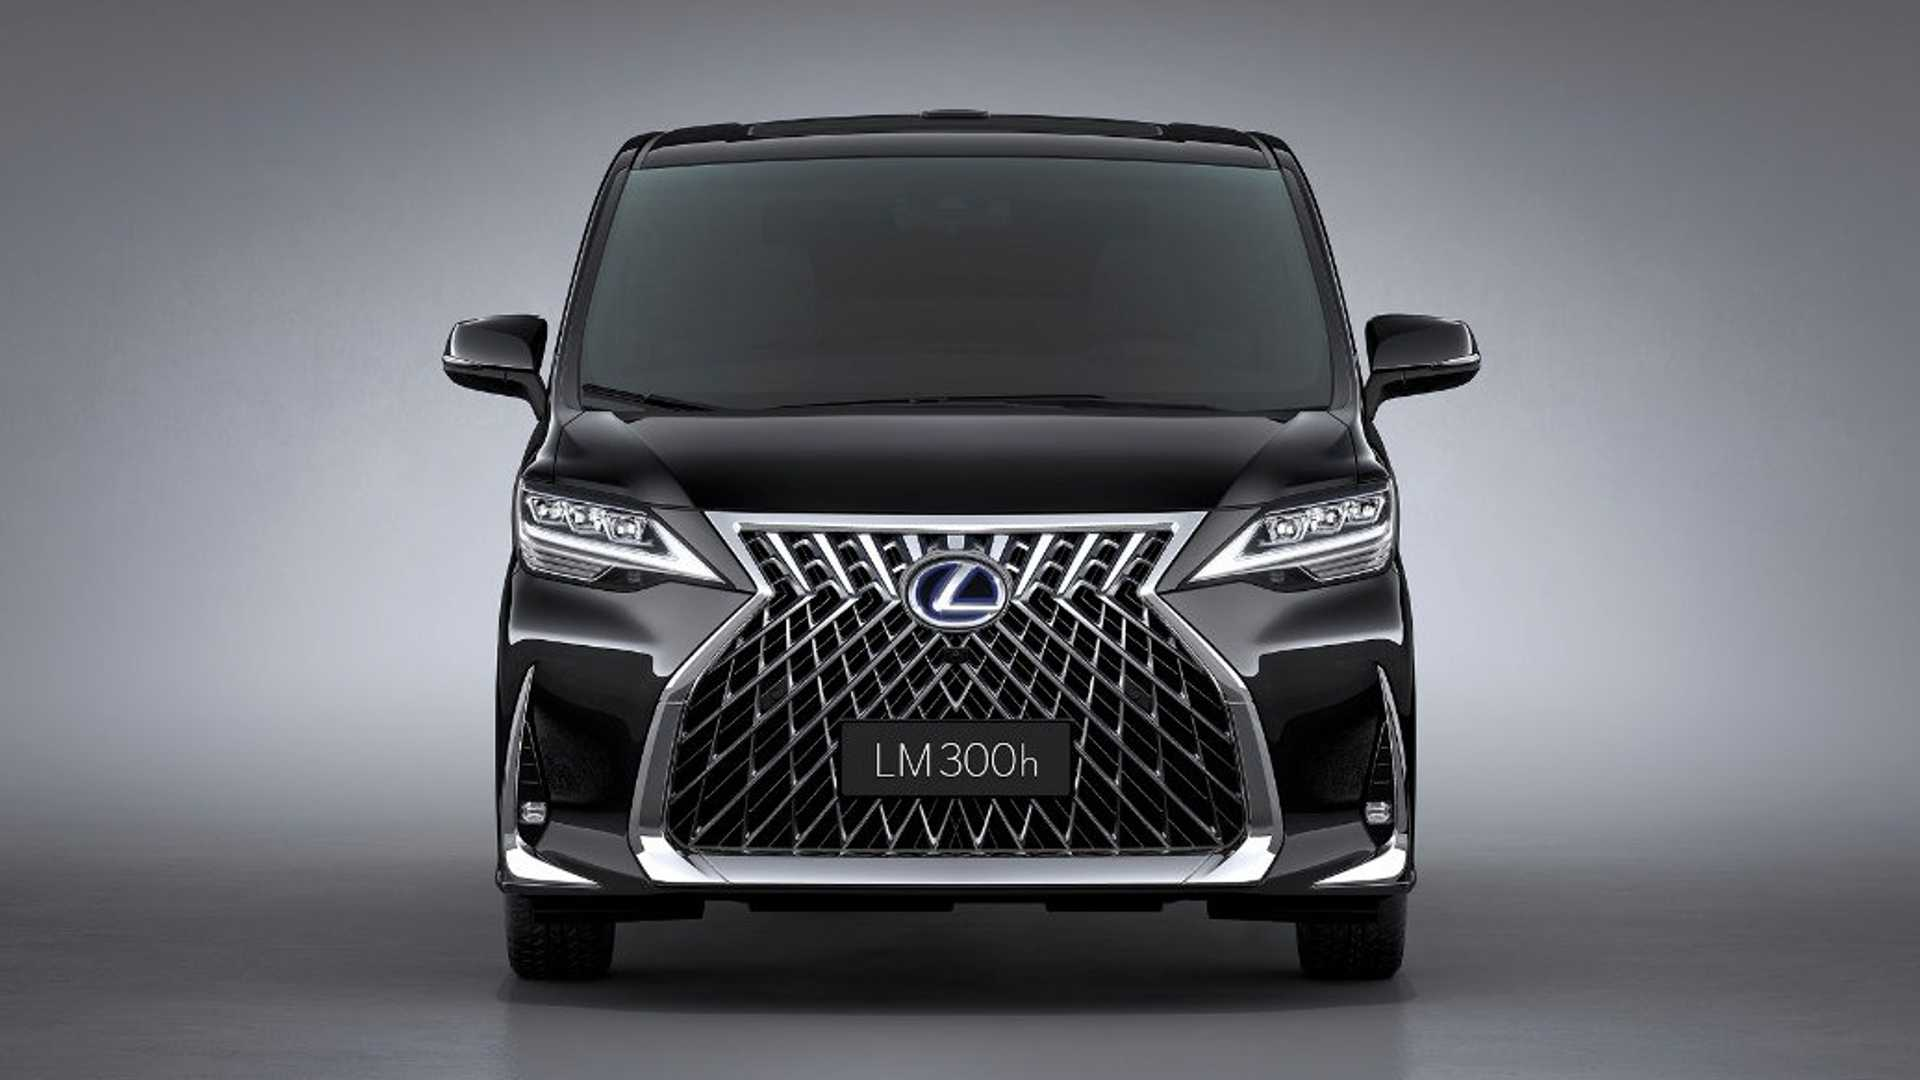 86 The Best Lexus Van 2020 Price Redesign